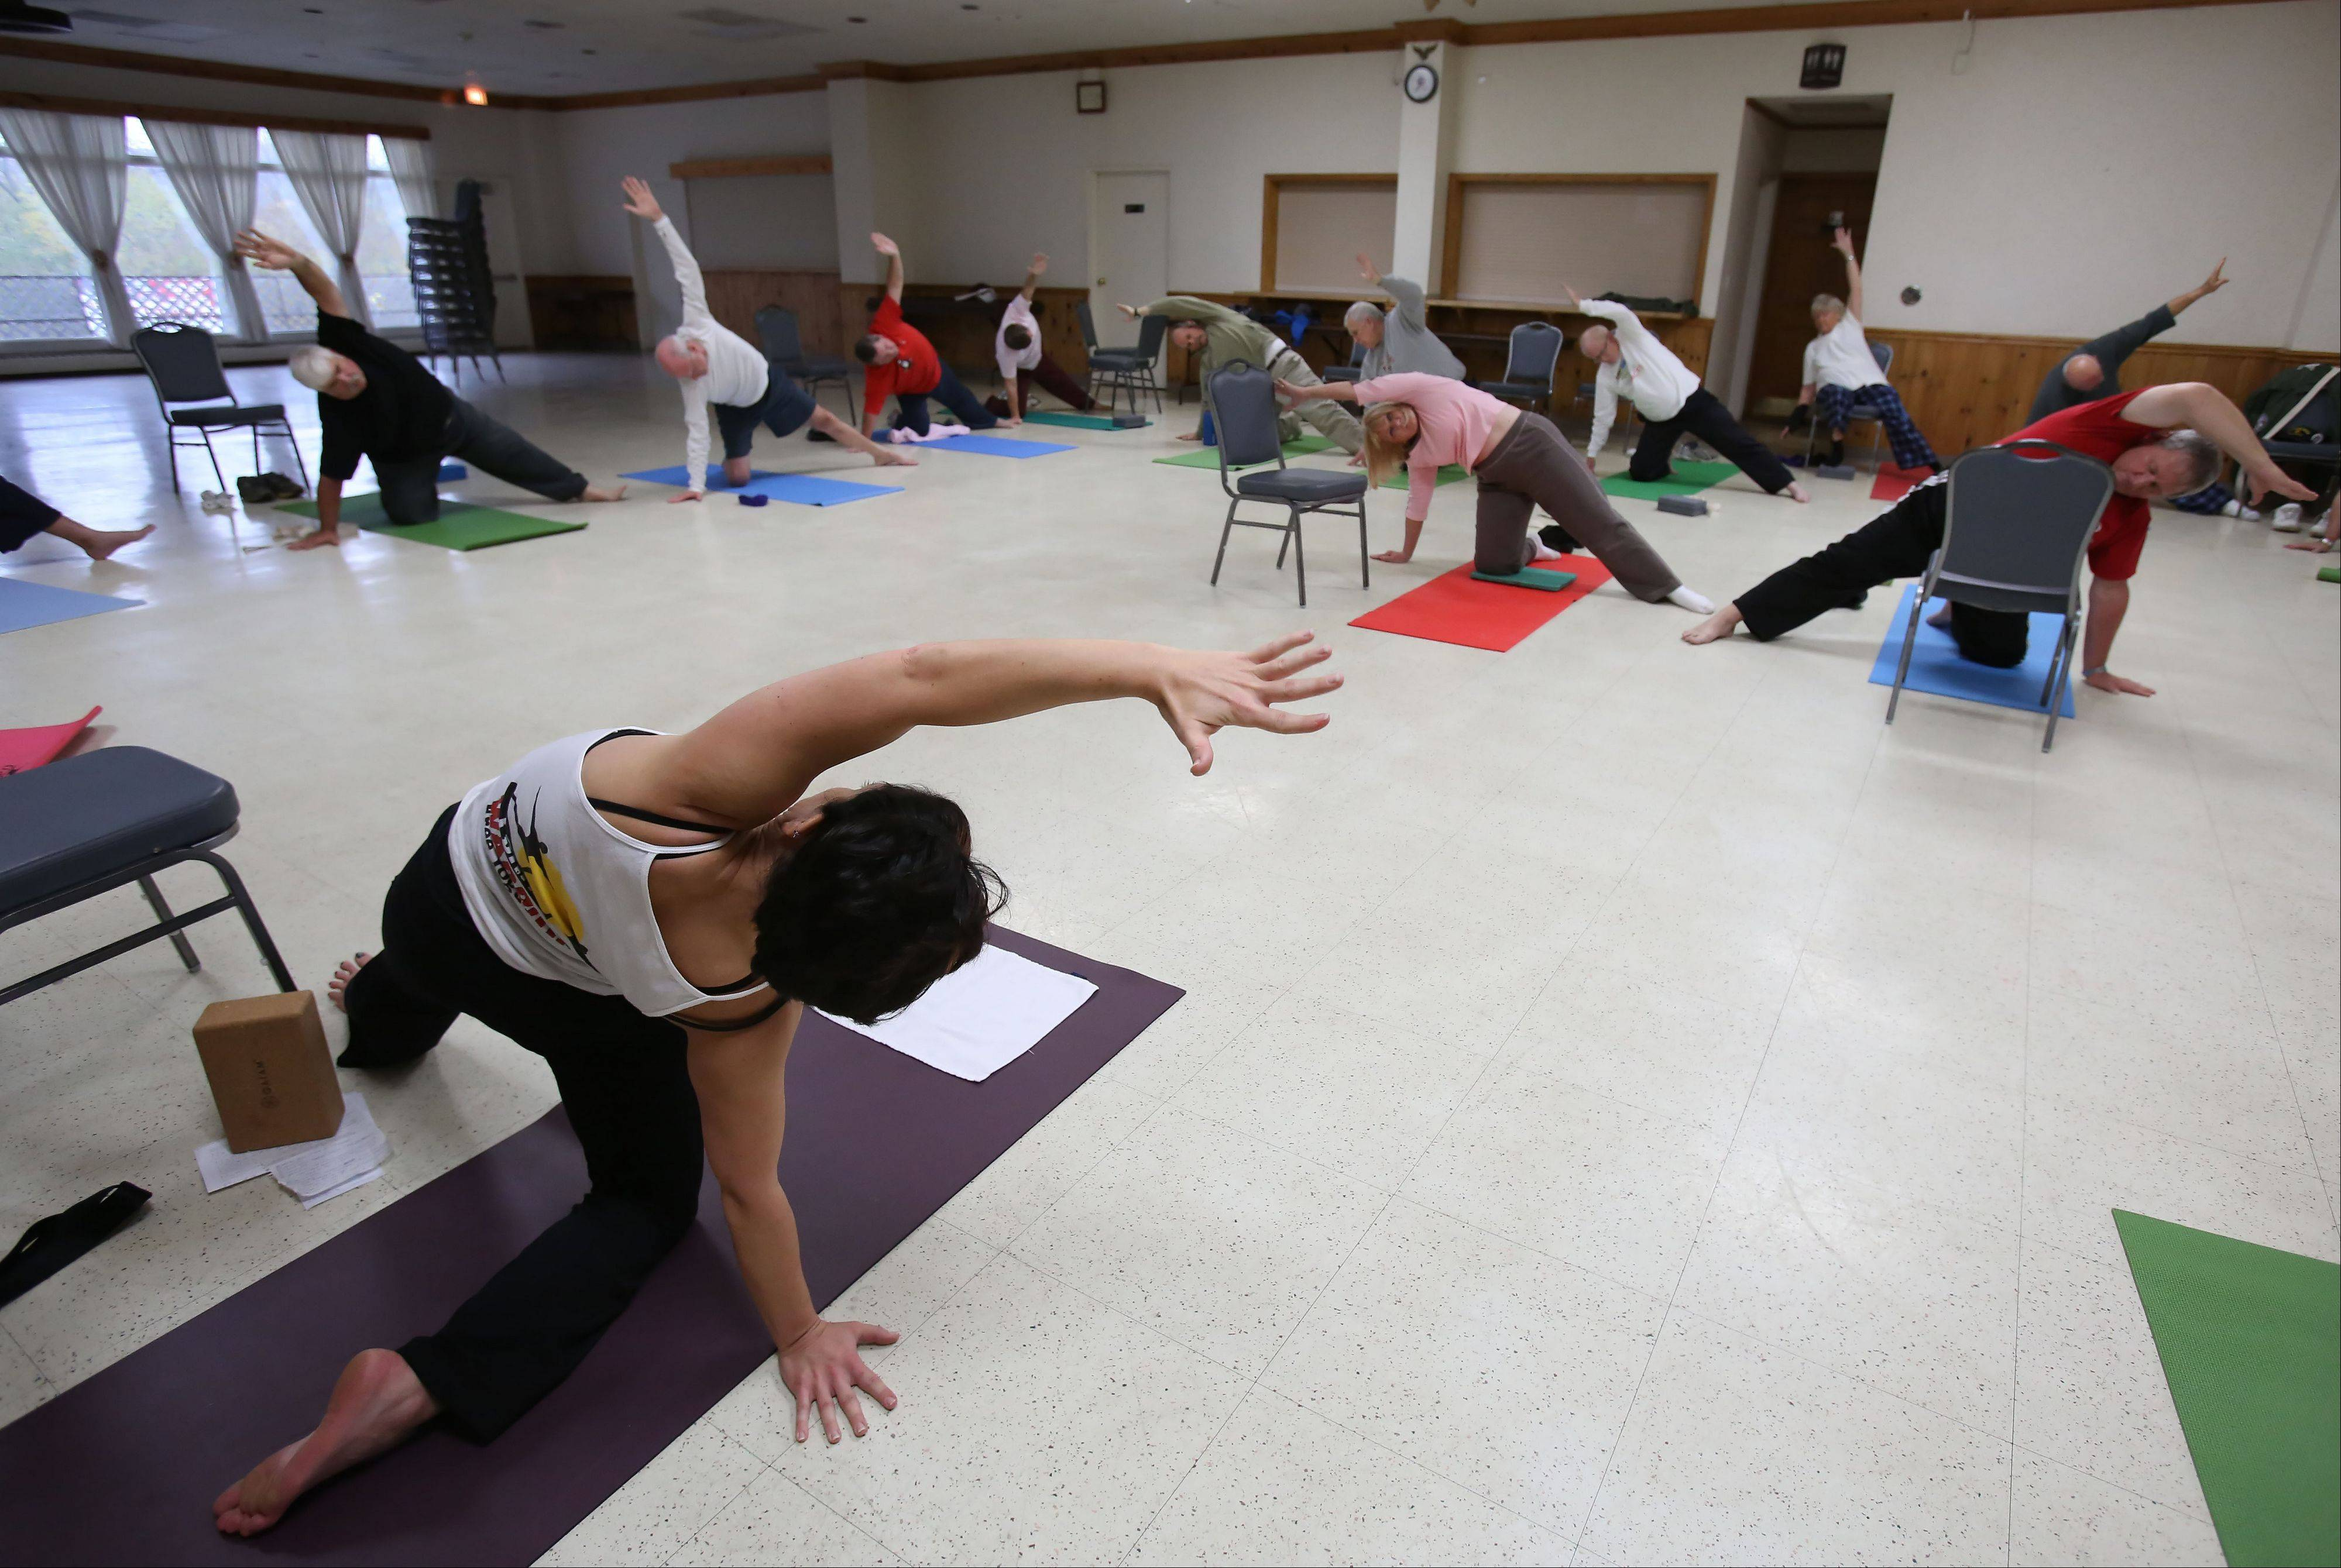 Dana Fish of Naperville guides about 20 Naperville-area veterans through a free yoga class at Judd Kendall VFW Post 3873 in Naperville. Fish has been trained by Connected Warriors to teach yoga in a manner that's accessible and supportive for military veterans.